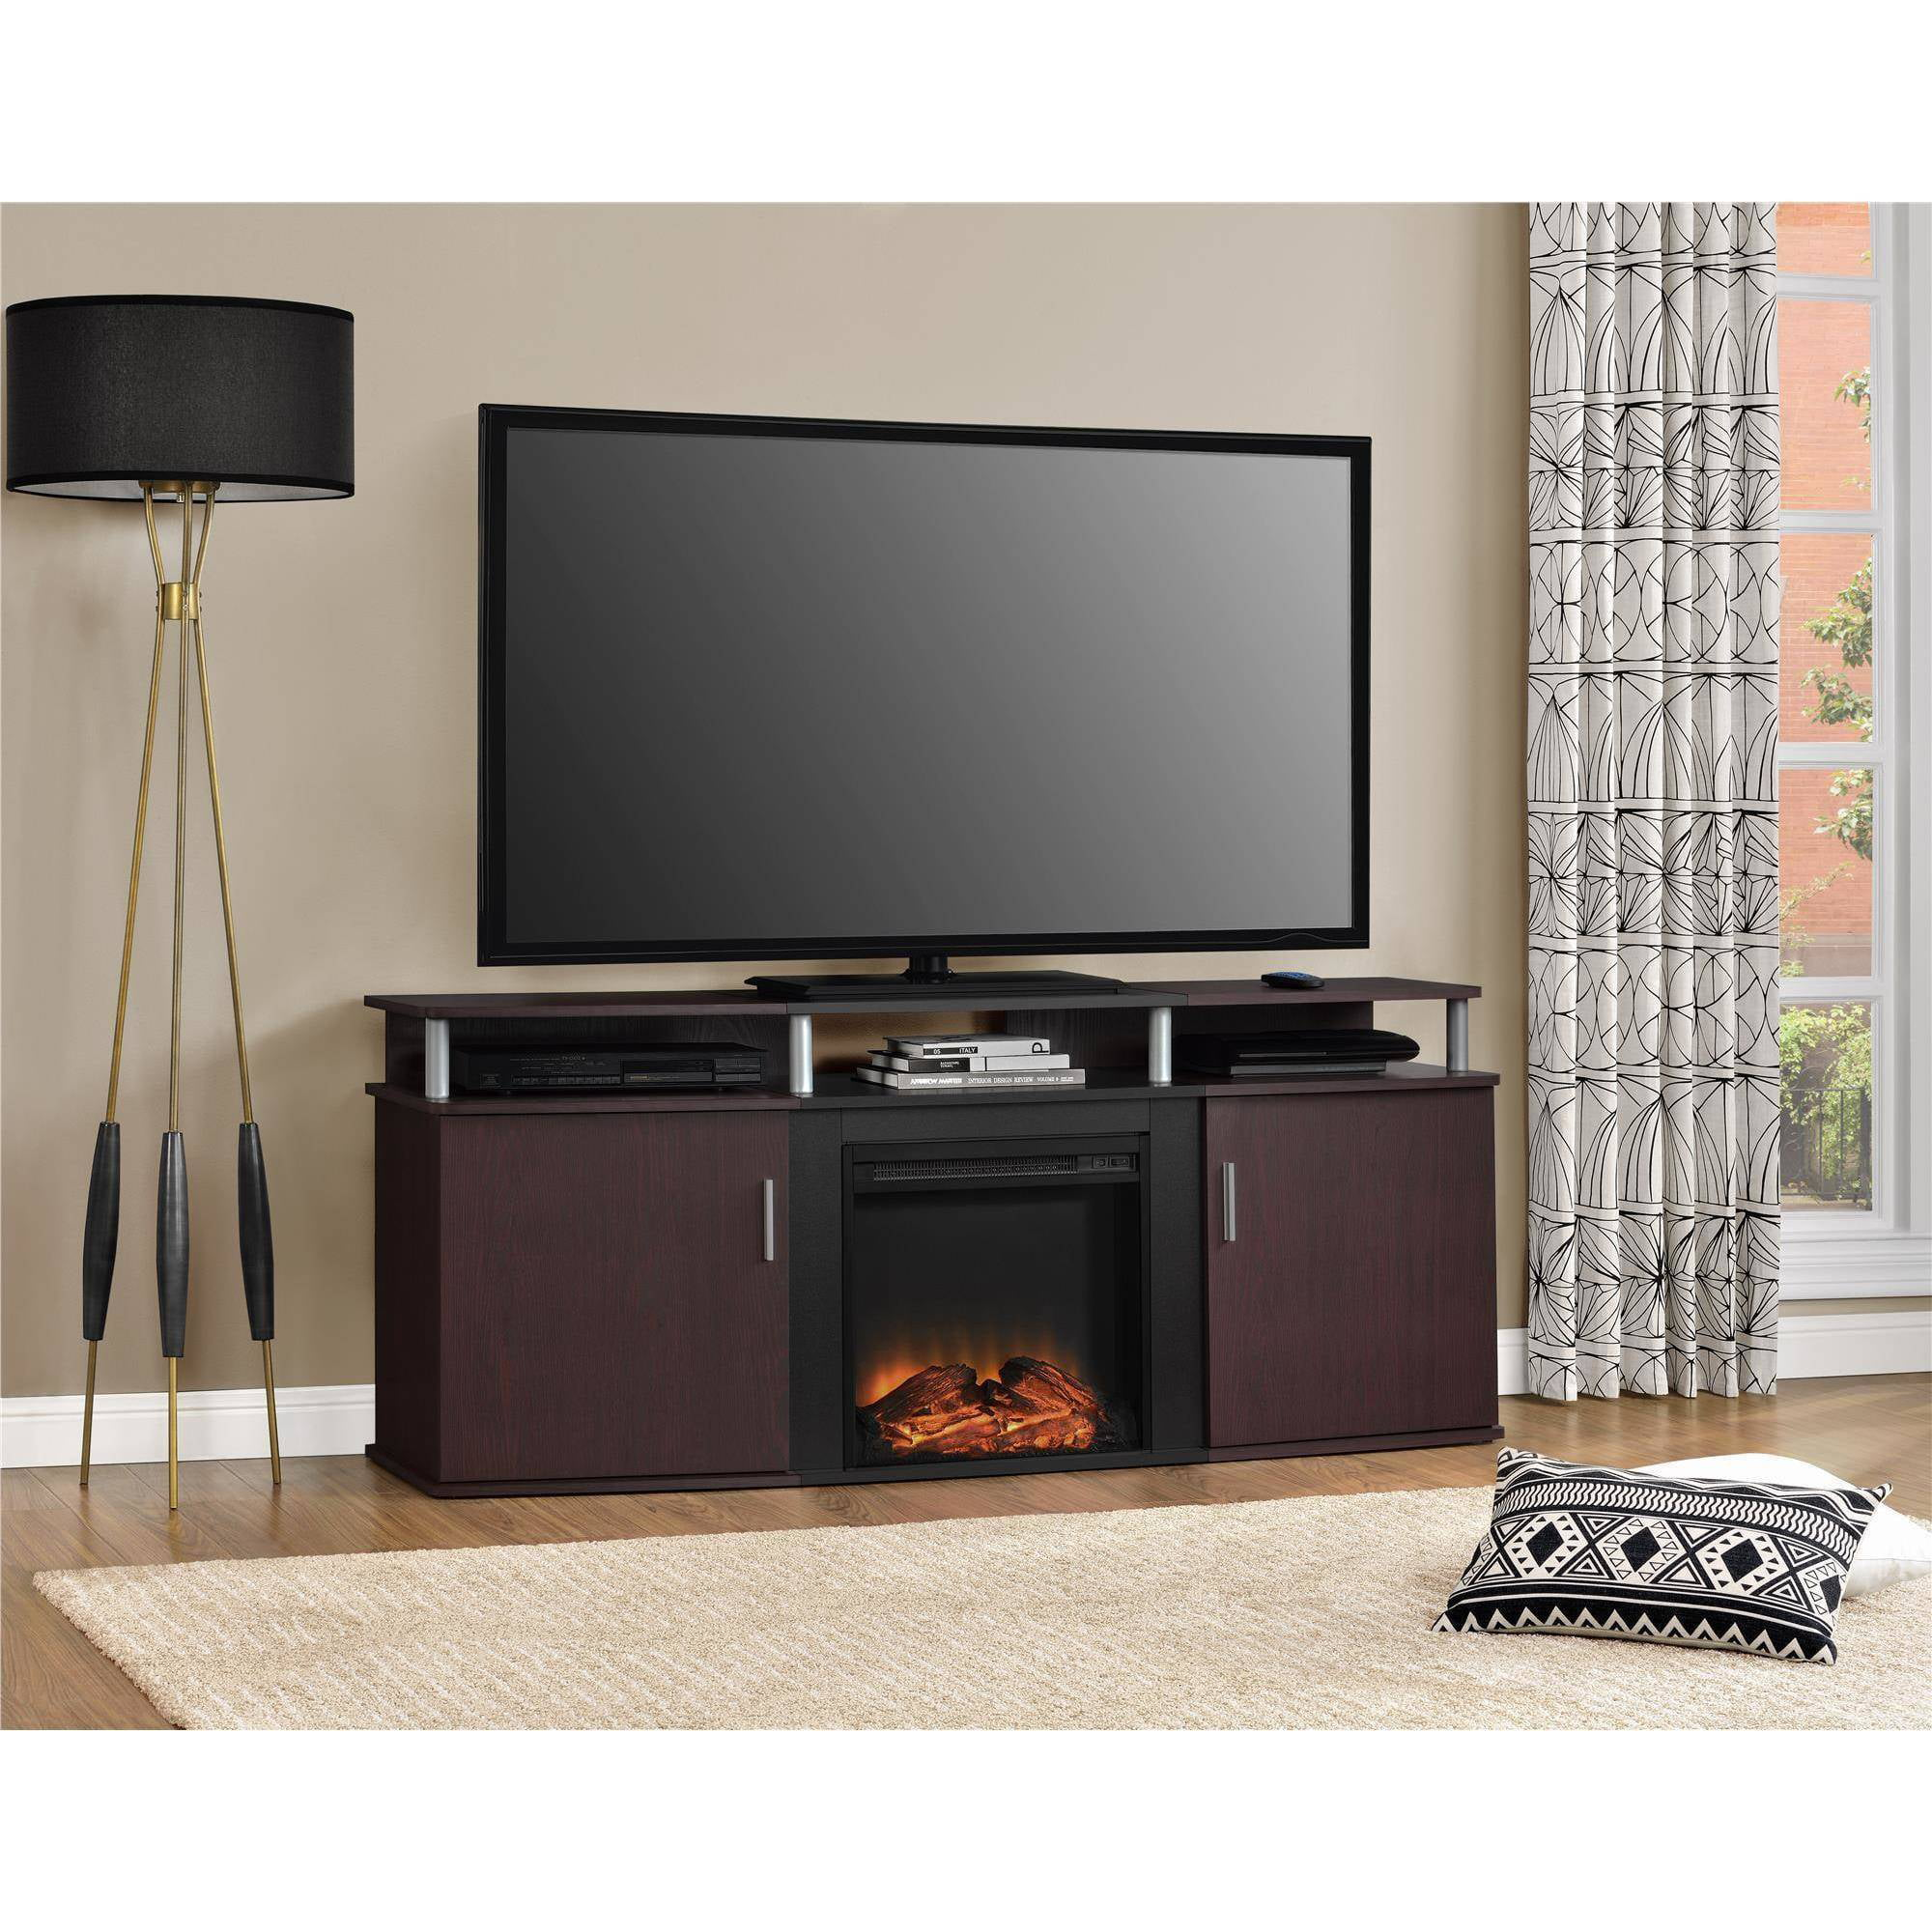 tv stands entertainment centers walmartcom - Tv Stands Entertainment Centers